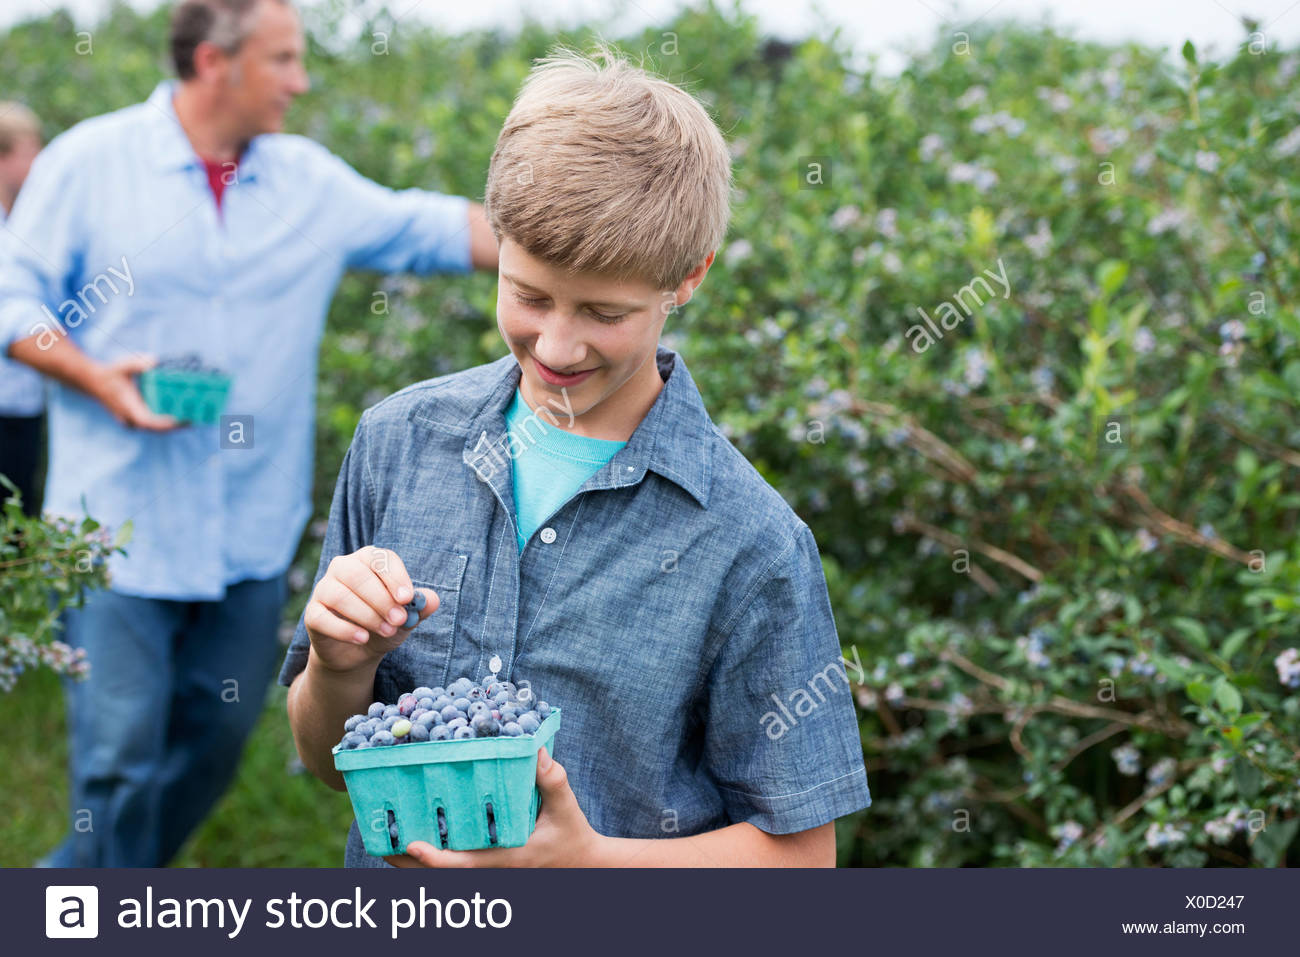 An organic fruit farm. A family picking the berry fruits from the bushes. - Stock Image